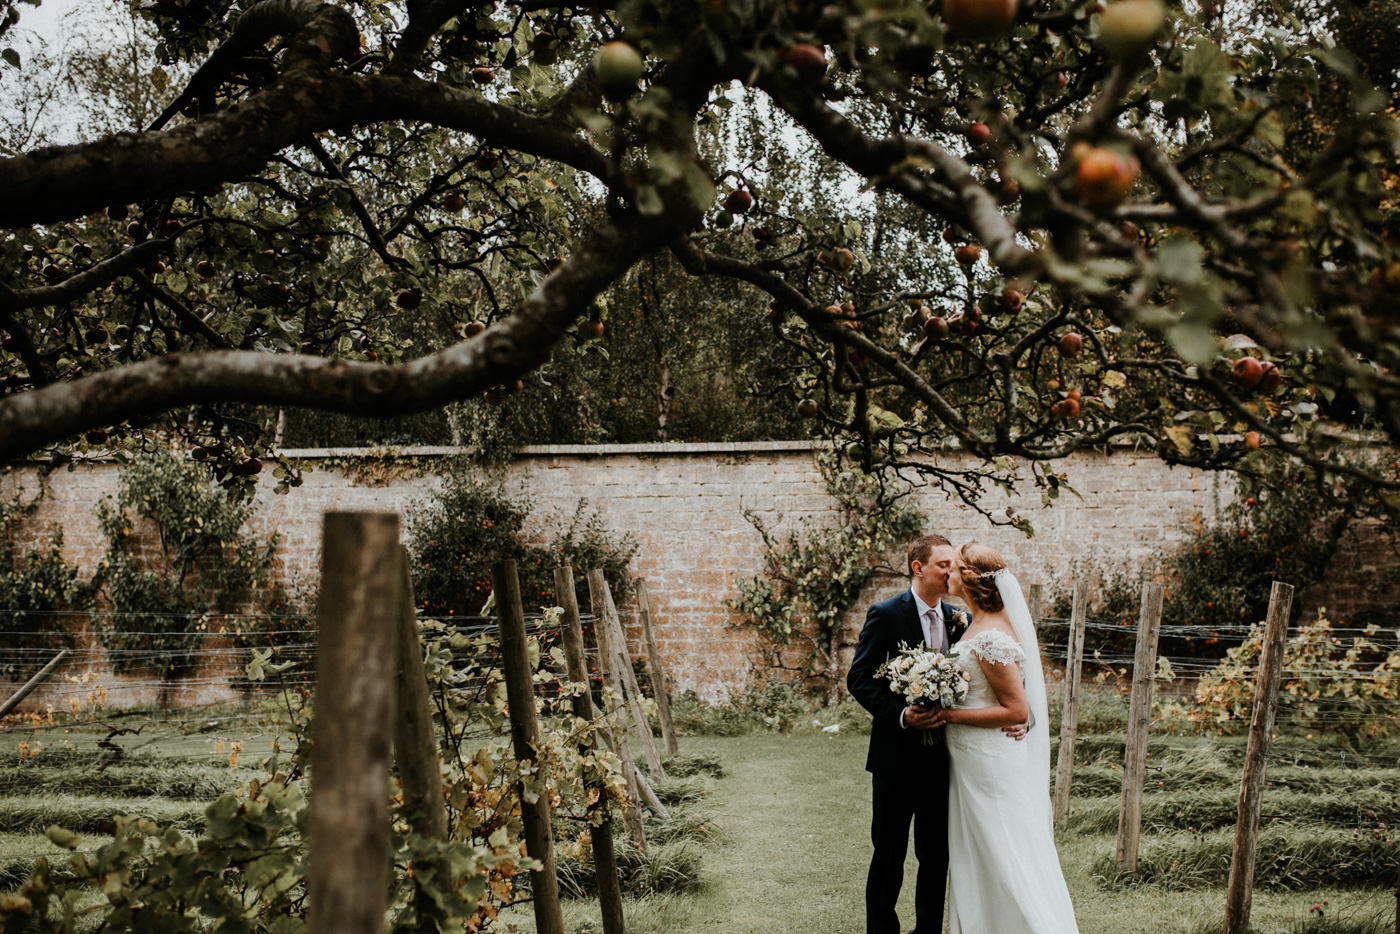 Holly and George, Leigh Park Hotel, Wiltshire 15